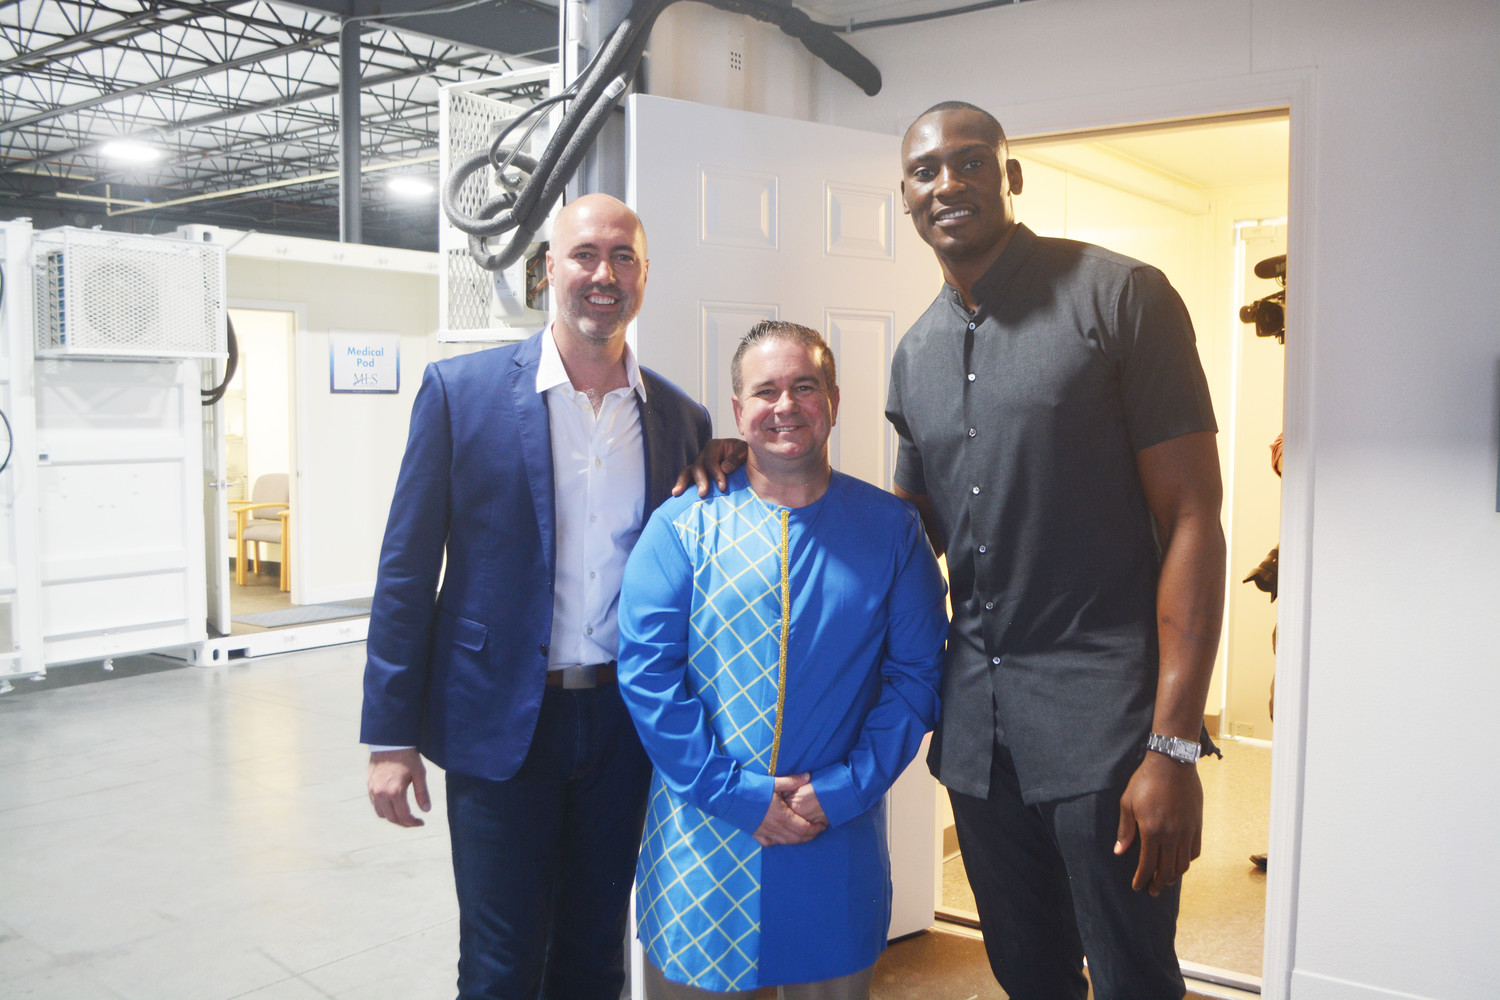 MATTER President Quenton Marty, Modular Life Solutions CEO Doug Recker and Orlando Magic player Bismack Biyombo gather April 13 at a fundraising event in Jacksonville benefiting a medical project that Biyombo is leading in the Congo.